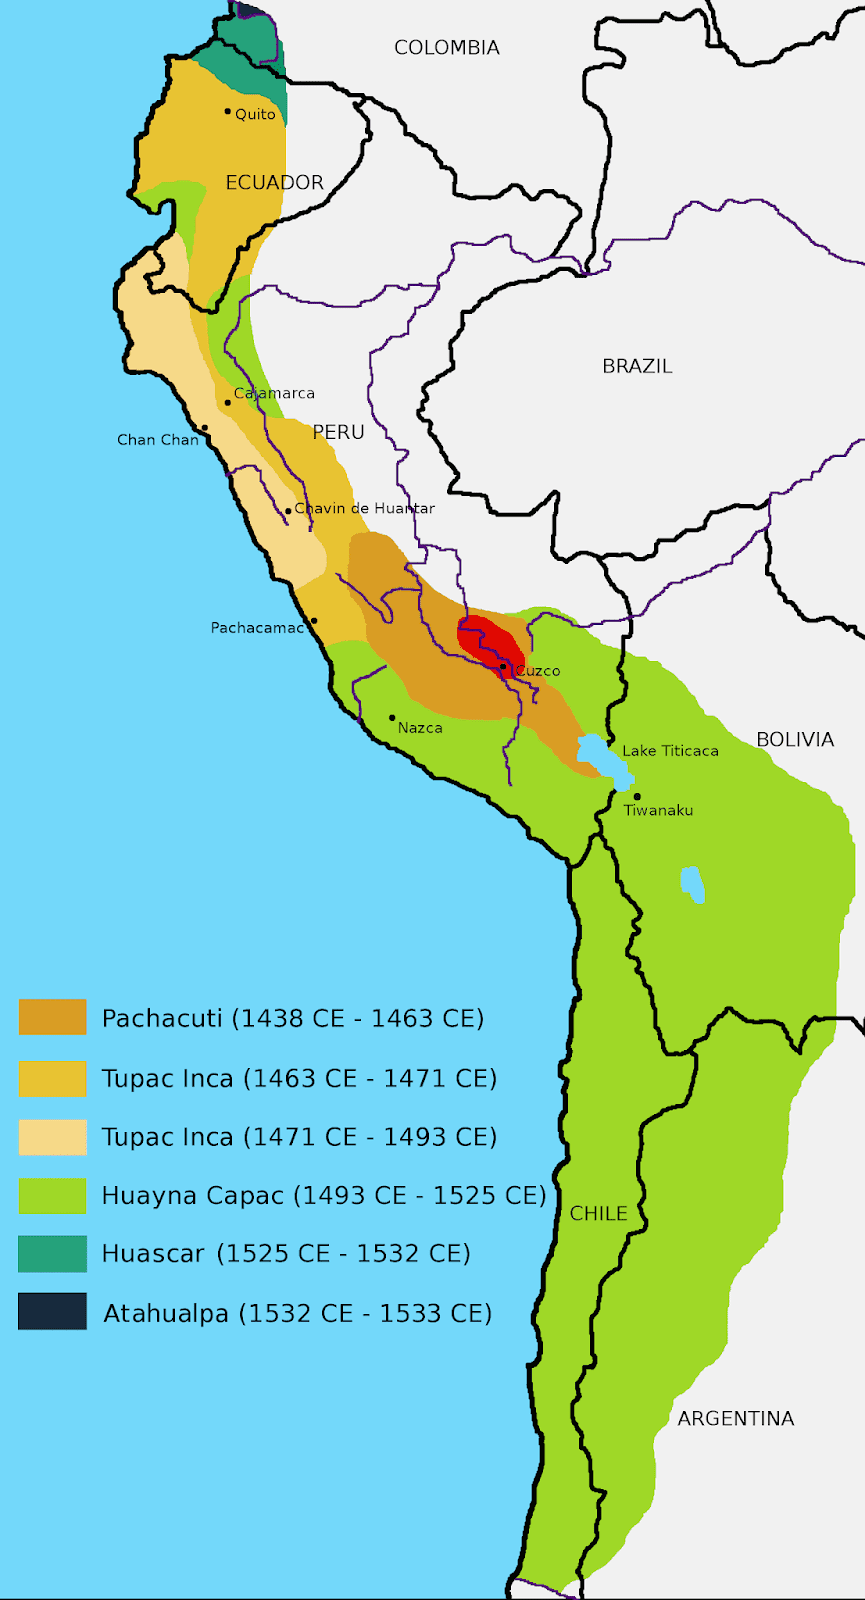 The Inca Empire | History Cl Inca Empire Map Roads on greece map, inca warriors, lima map, inca city, inca buildings, inca pyramids, inca people, inca roads, chimu map, inca civilization, brazil map, tenochtitlan map, inca houses, inca trail, mesoamerica map, inca food, china map, inca crops, inca art, inca flag,